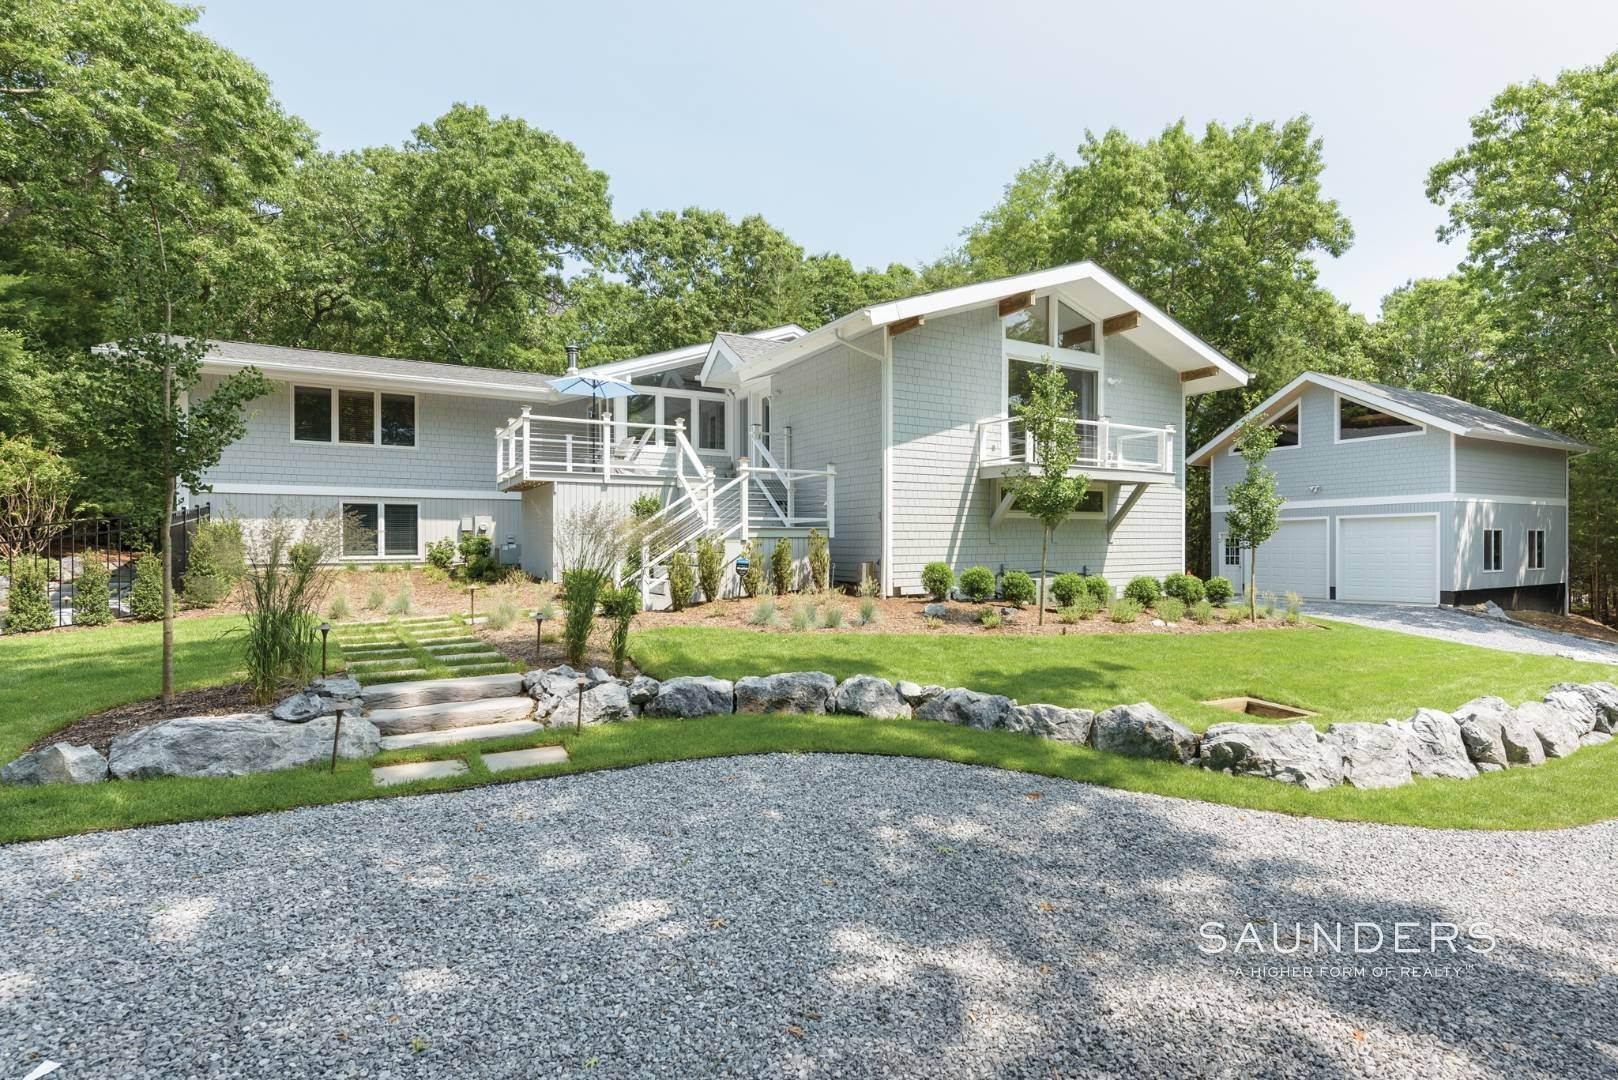 22. Single Family Homes for Sale at Newly Renovated Bright Contemporary Checks All Boxes 60 Old Northwest Road, East Hampton, East Hampton Town, NY 11937